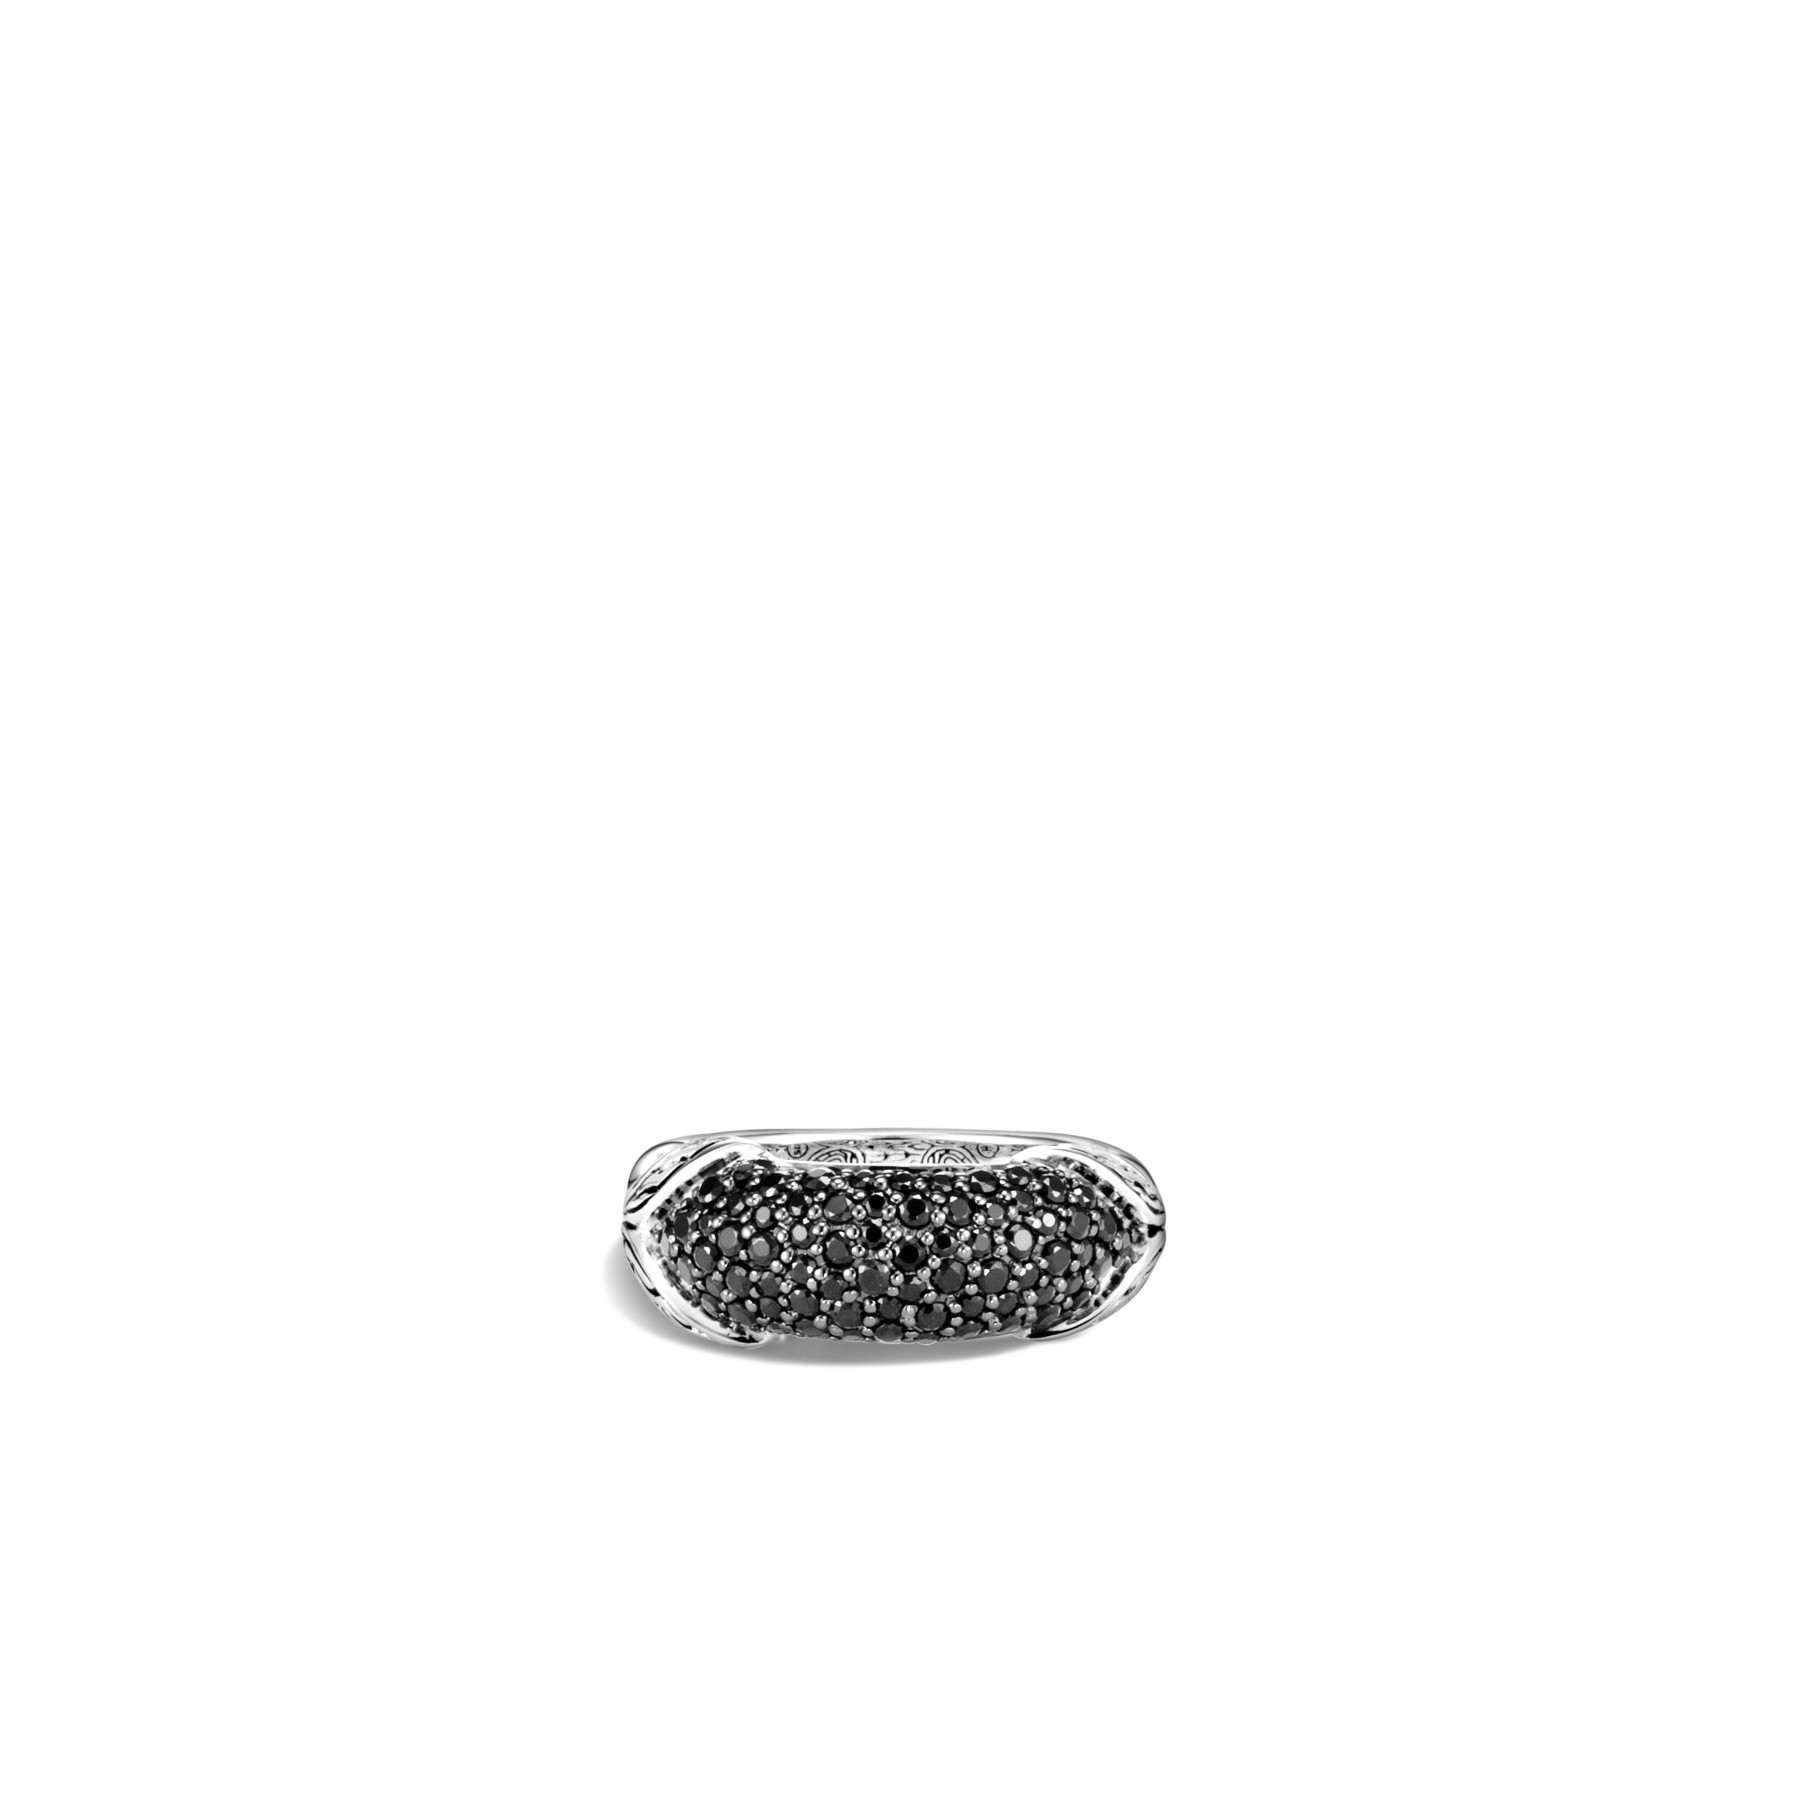 John Hardy Asli Classic Chain Silver and Black Gemstone Ring top view